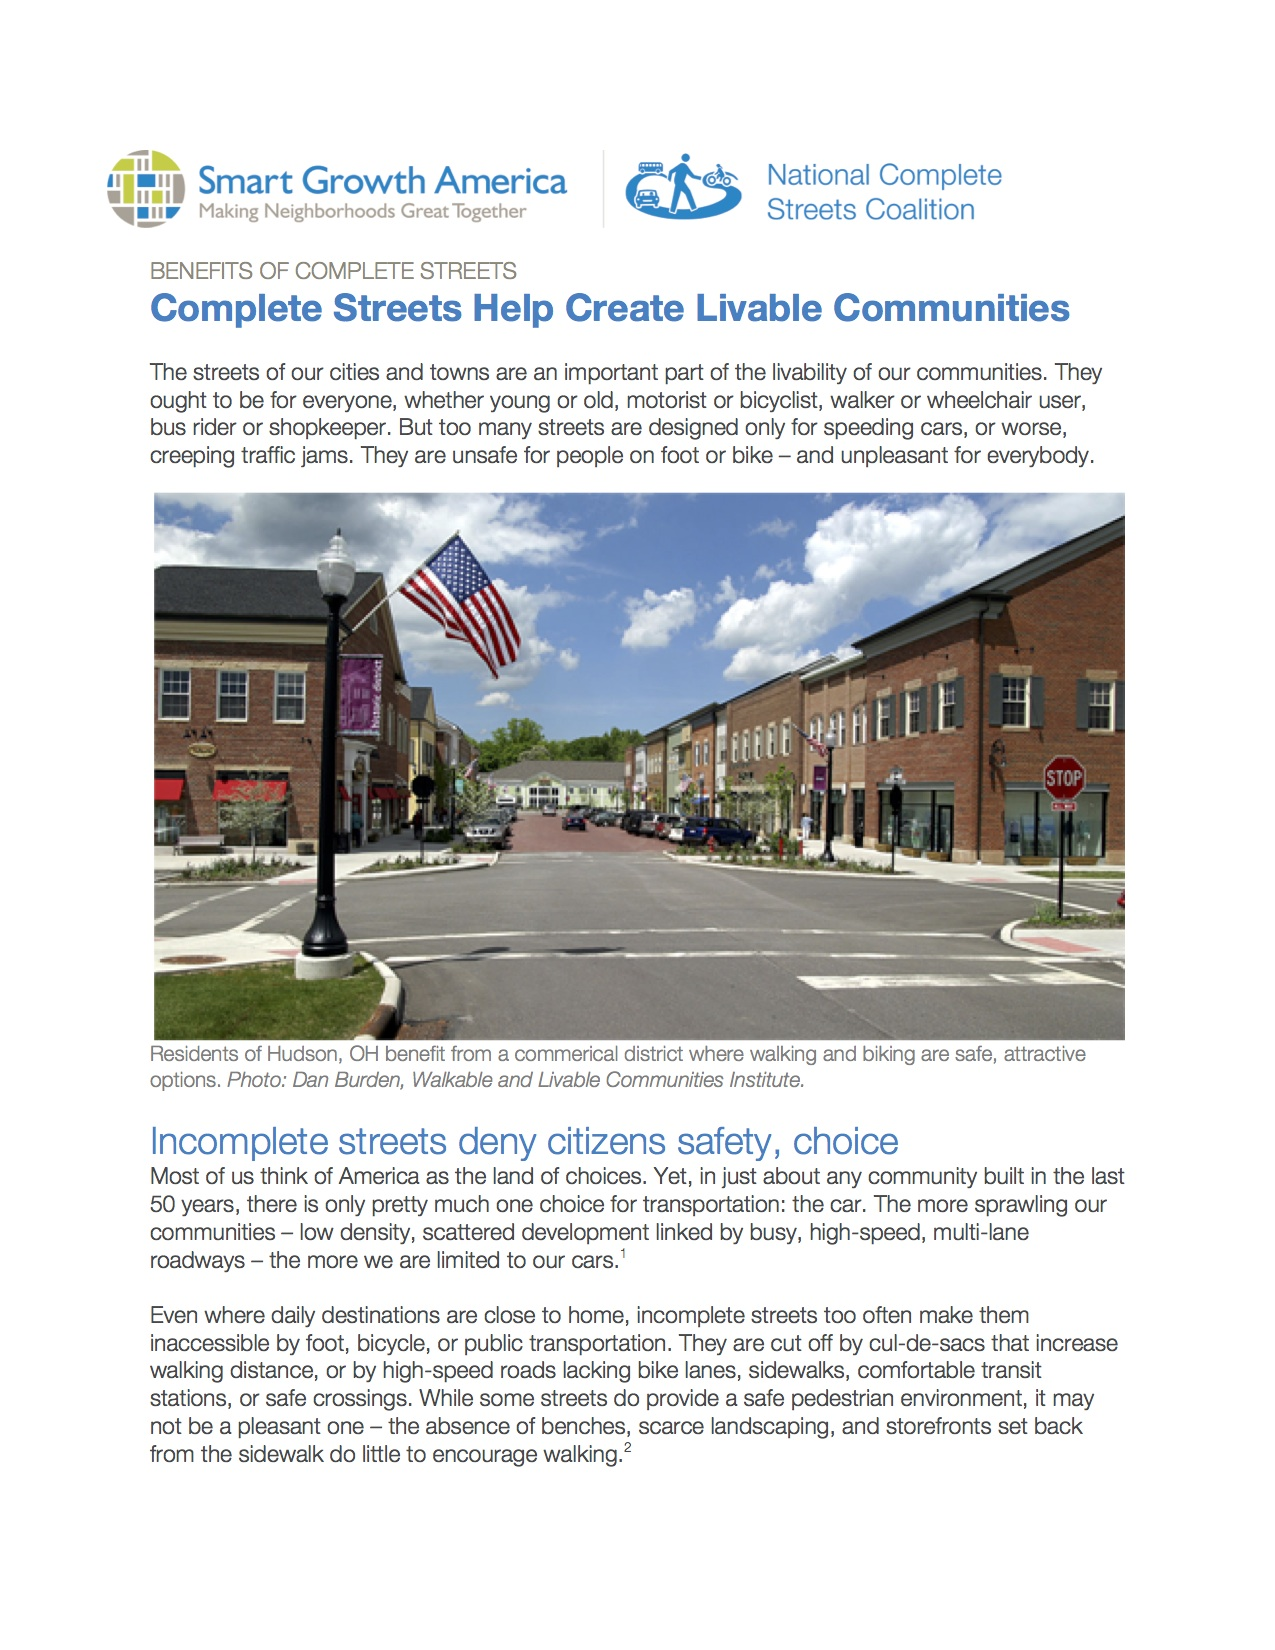 Create Livable Communities: Benefits of Complete Streets